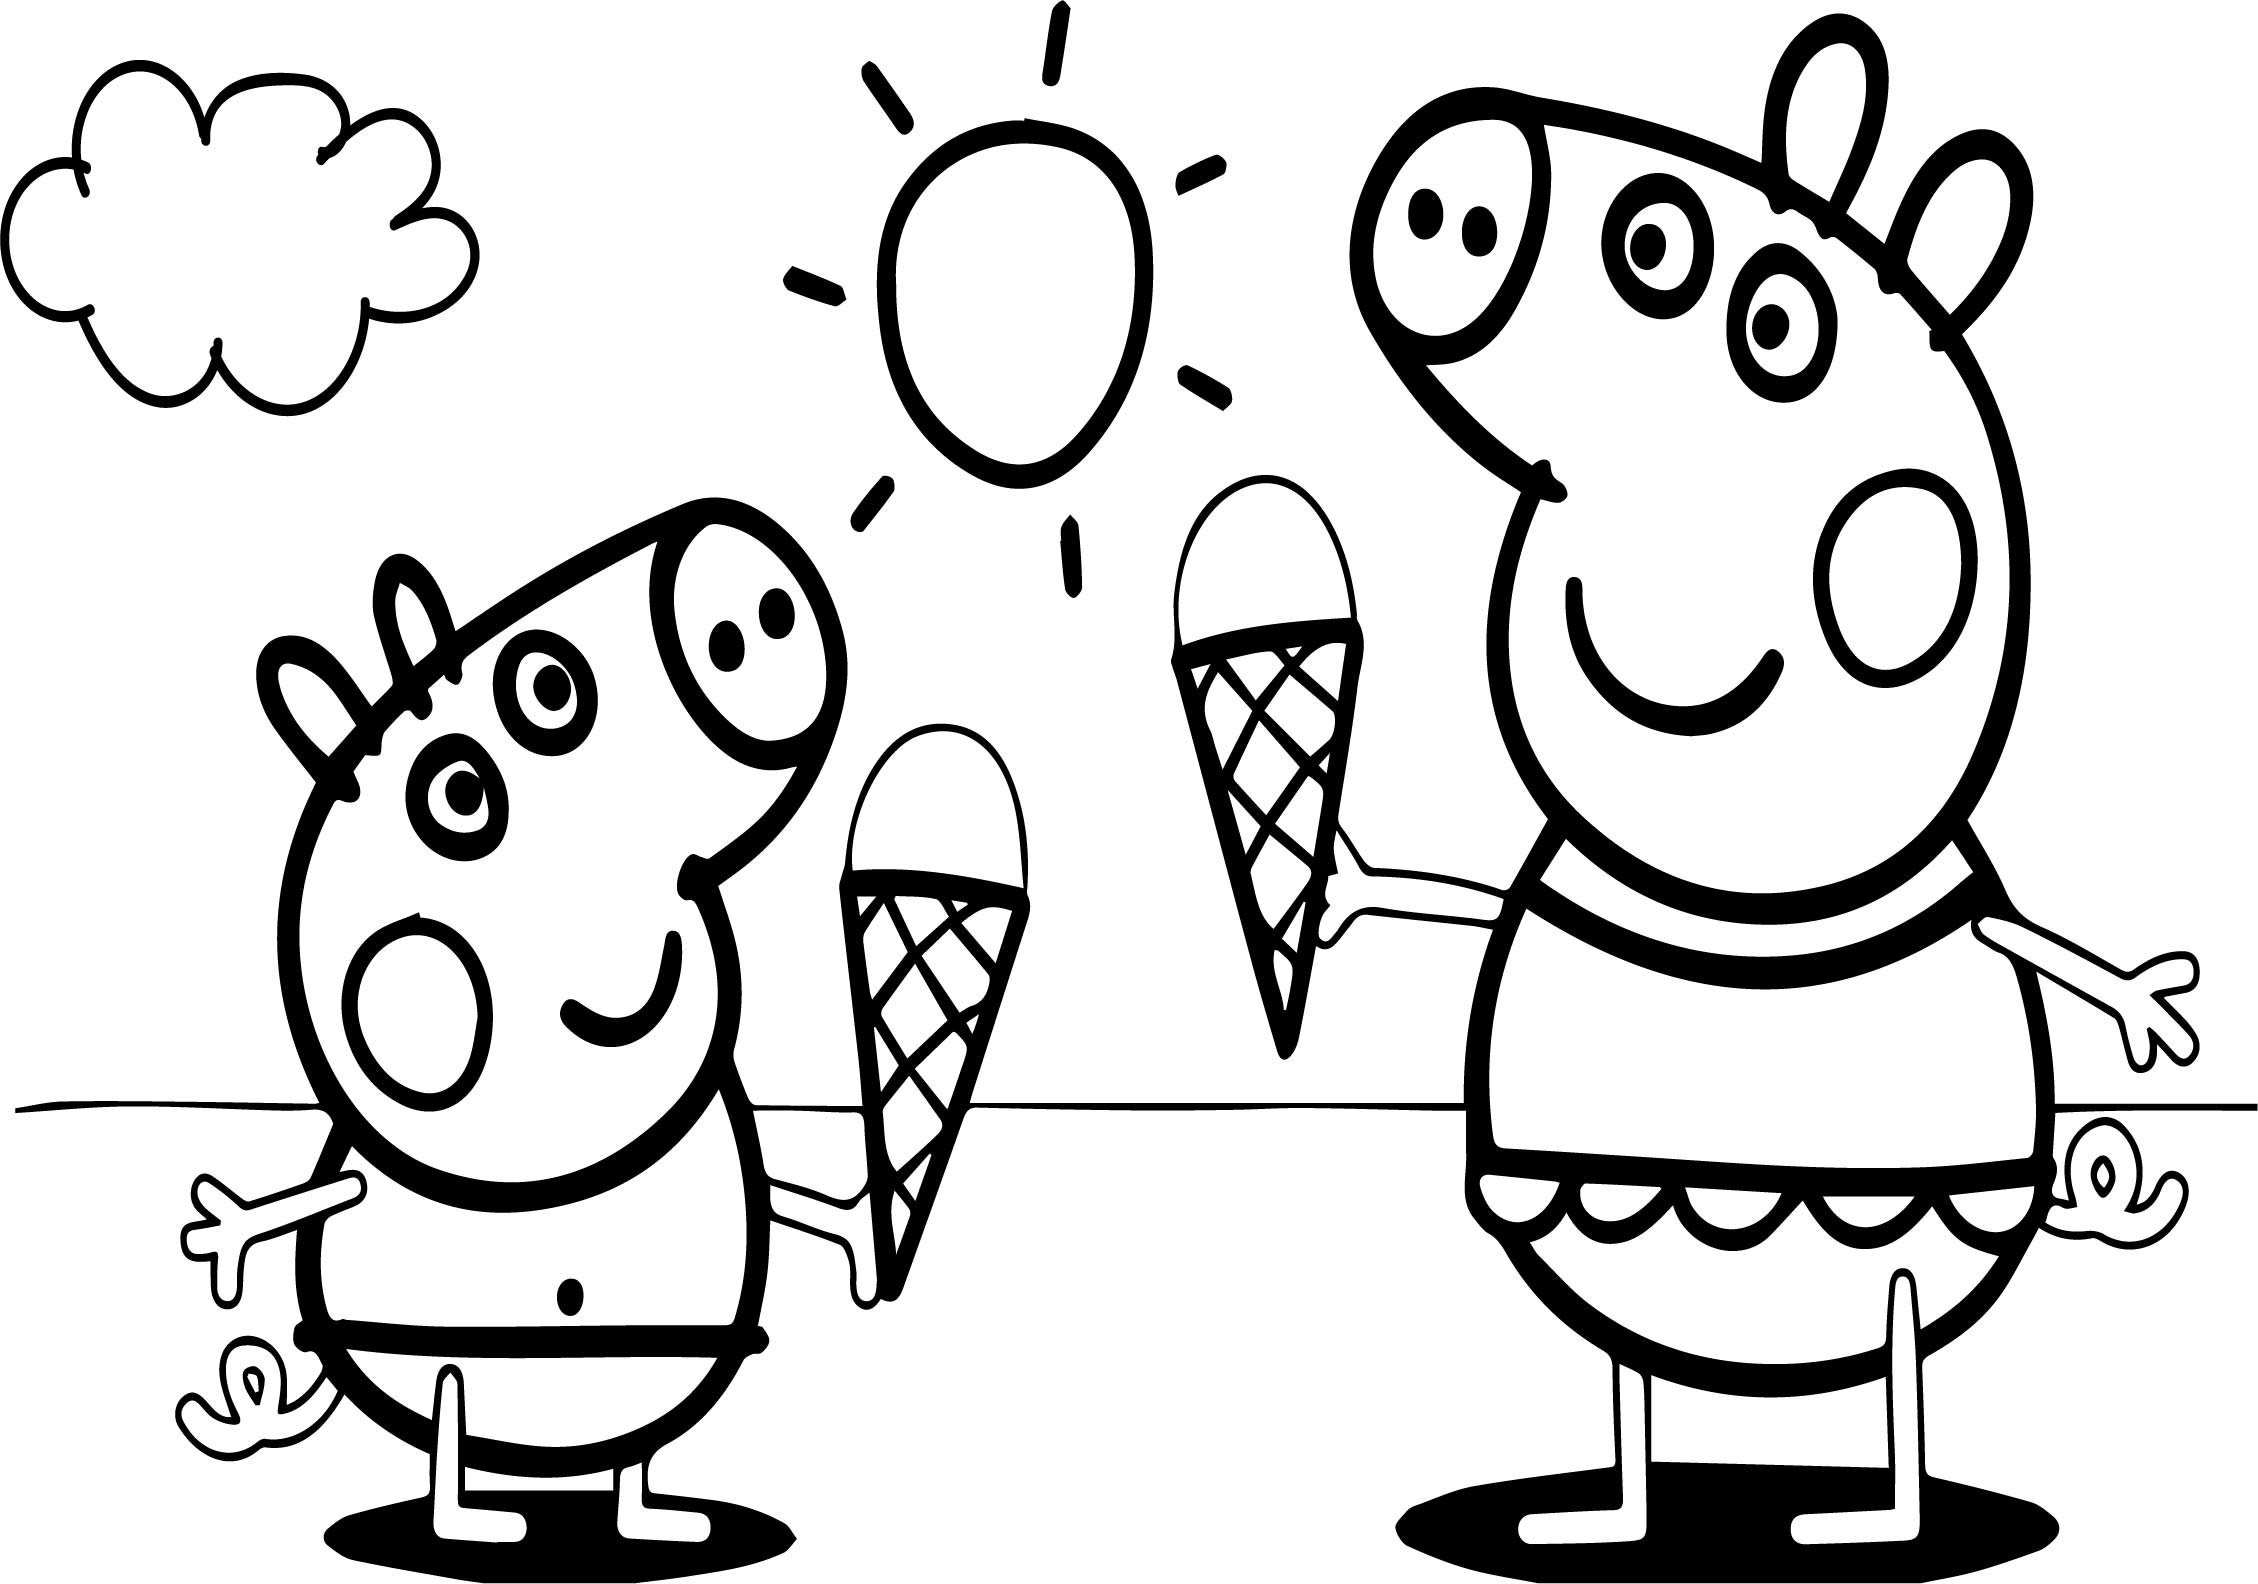 peppa pig colouring pages online peppa pig go swimming coloring page free printable pages colouring peppa online pig